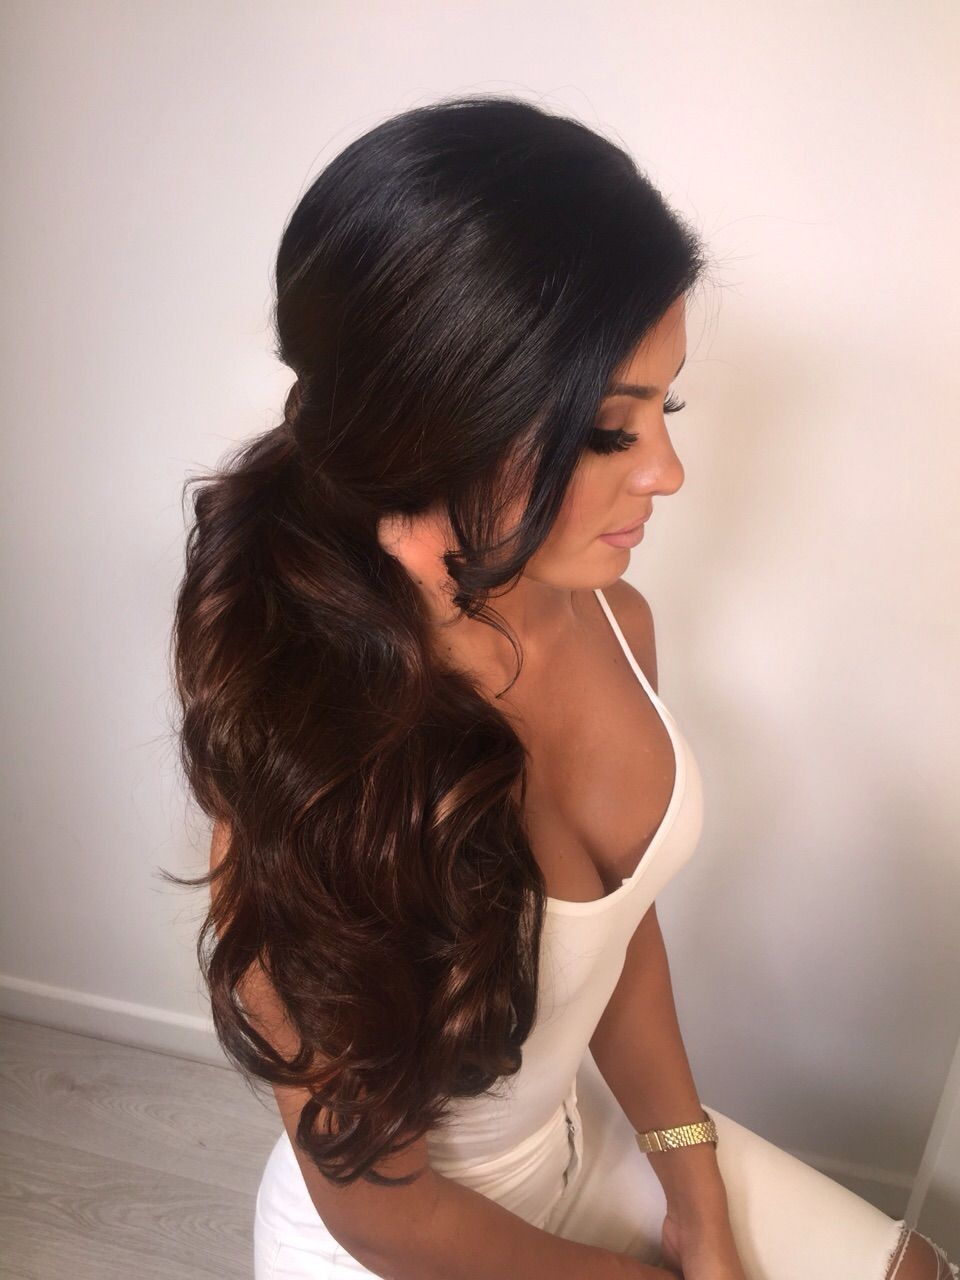 Pin by inna sml on שמלות לחתונה pinterest hair style prom and